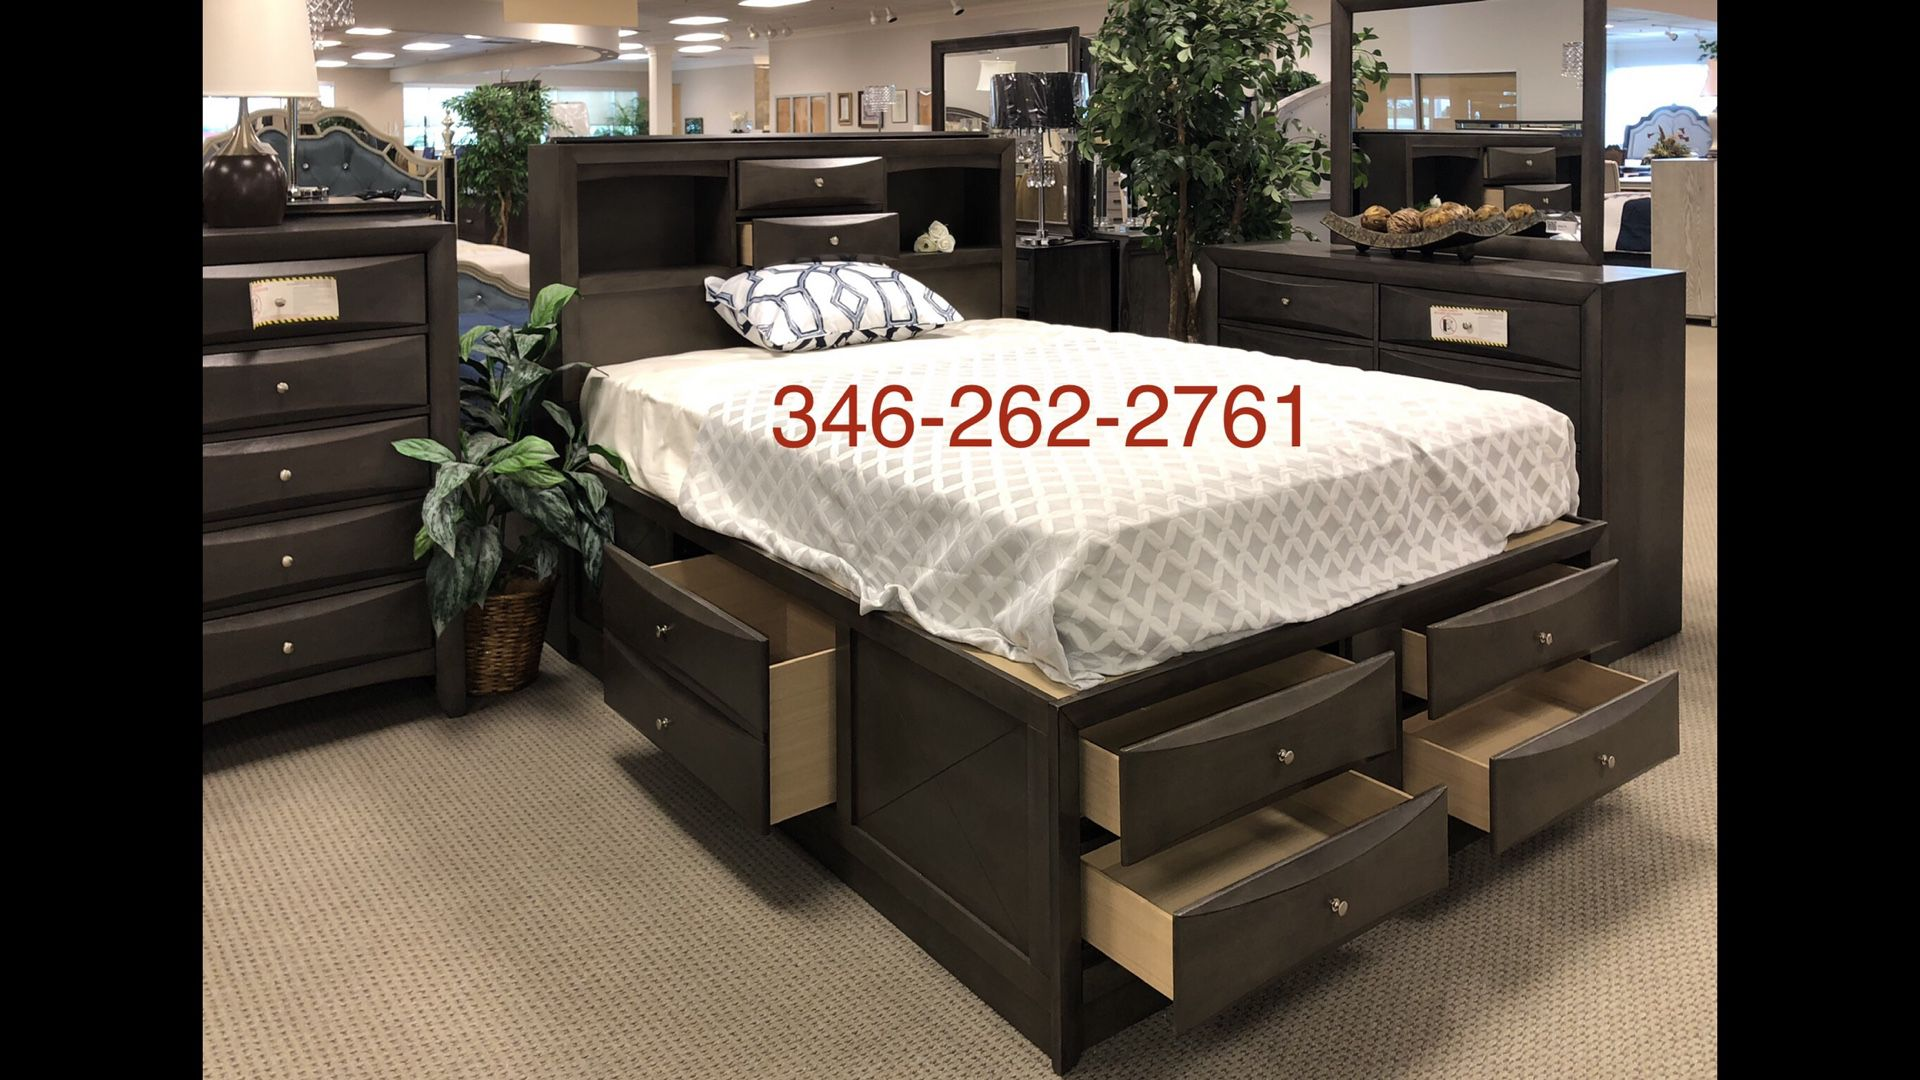 ANEW NEW NEW BEDROM SETS ALL STARTING AT LOW PRICES